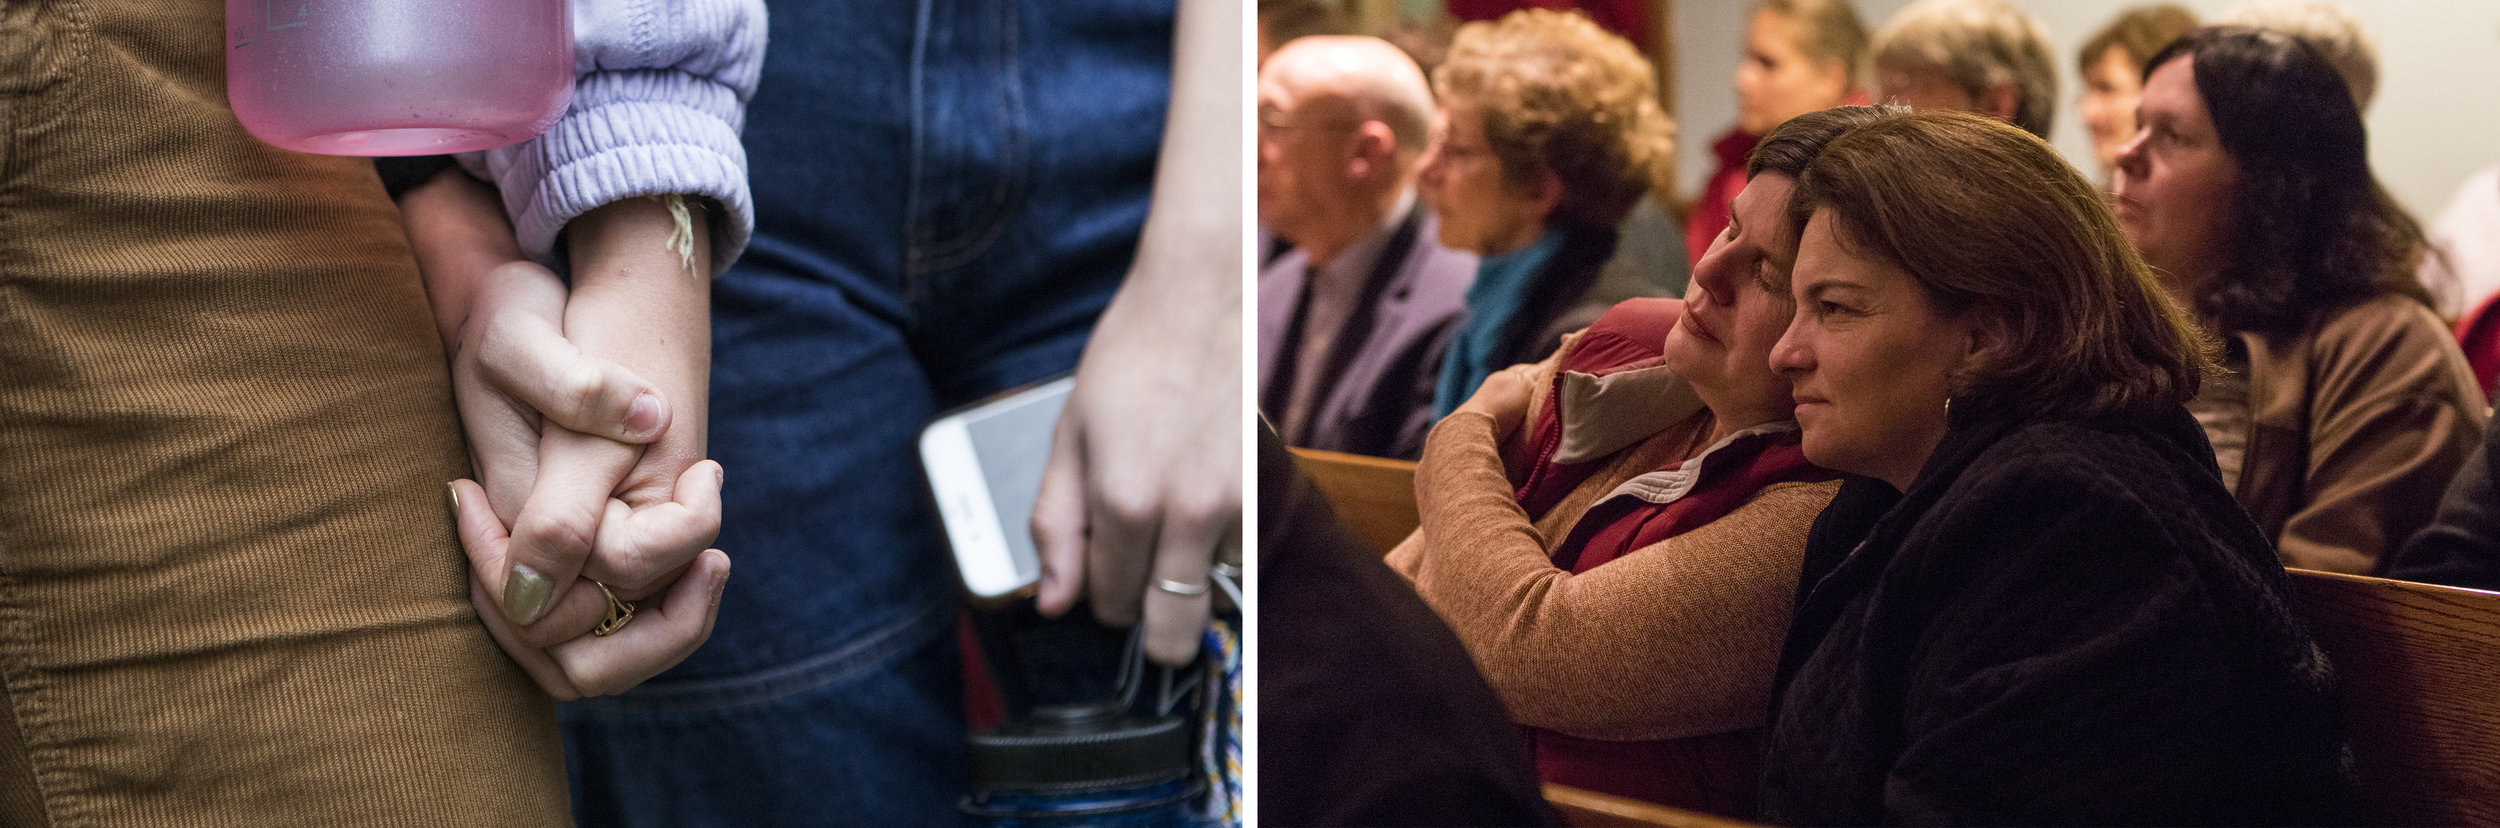 (Left) Senior Isa Dray and junior Lucia Kolk hold hands during a walkout to protest Brett Kavanaugh's confirmation to the Supreme Court at Arlington High School. (Right) Camille Bernstein, left, and Heather Martin, both of Franklin, share a moment during the Service of Comfort, Consolation, and Solidarity hosted by the Franklin Interfaith Council at St. John's Episcopal Church.